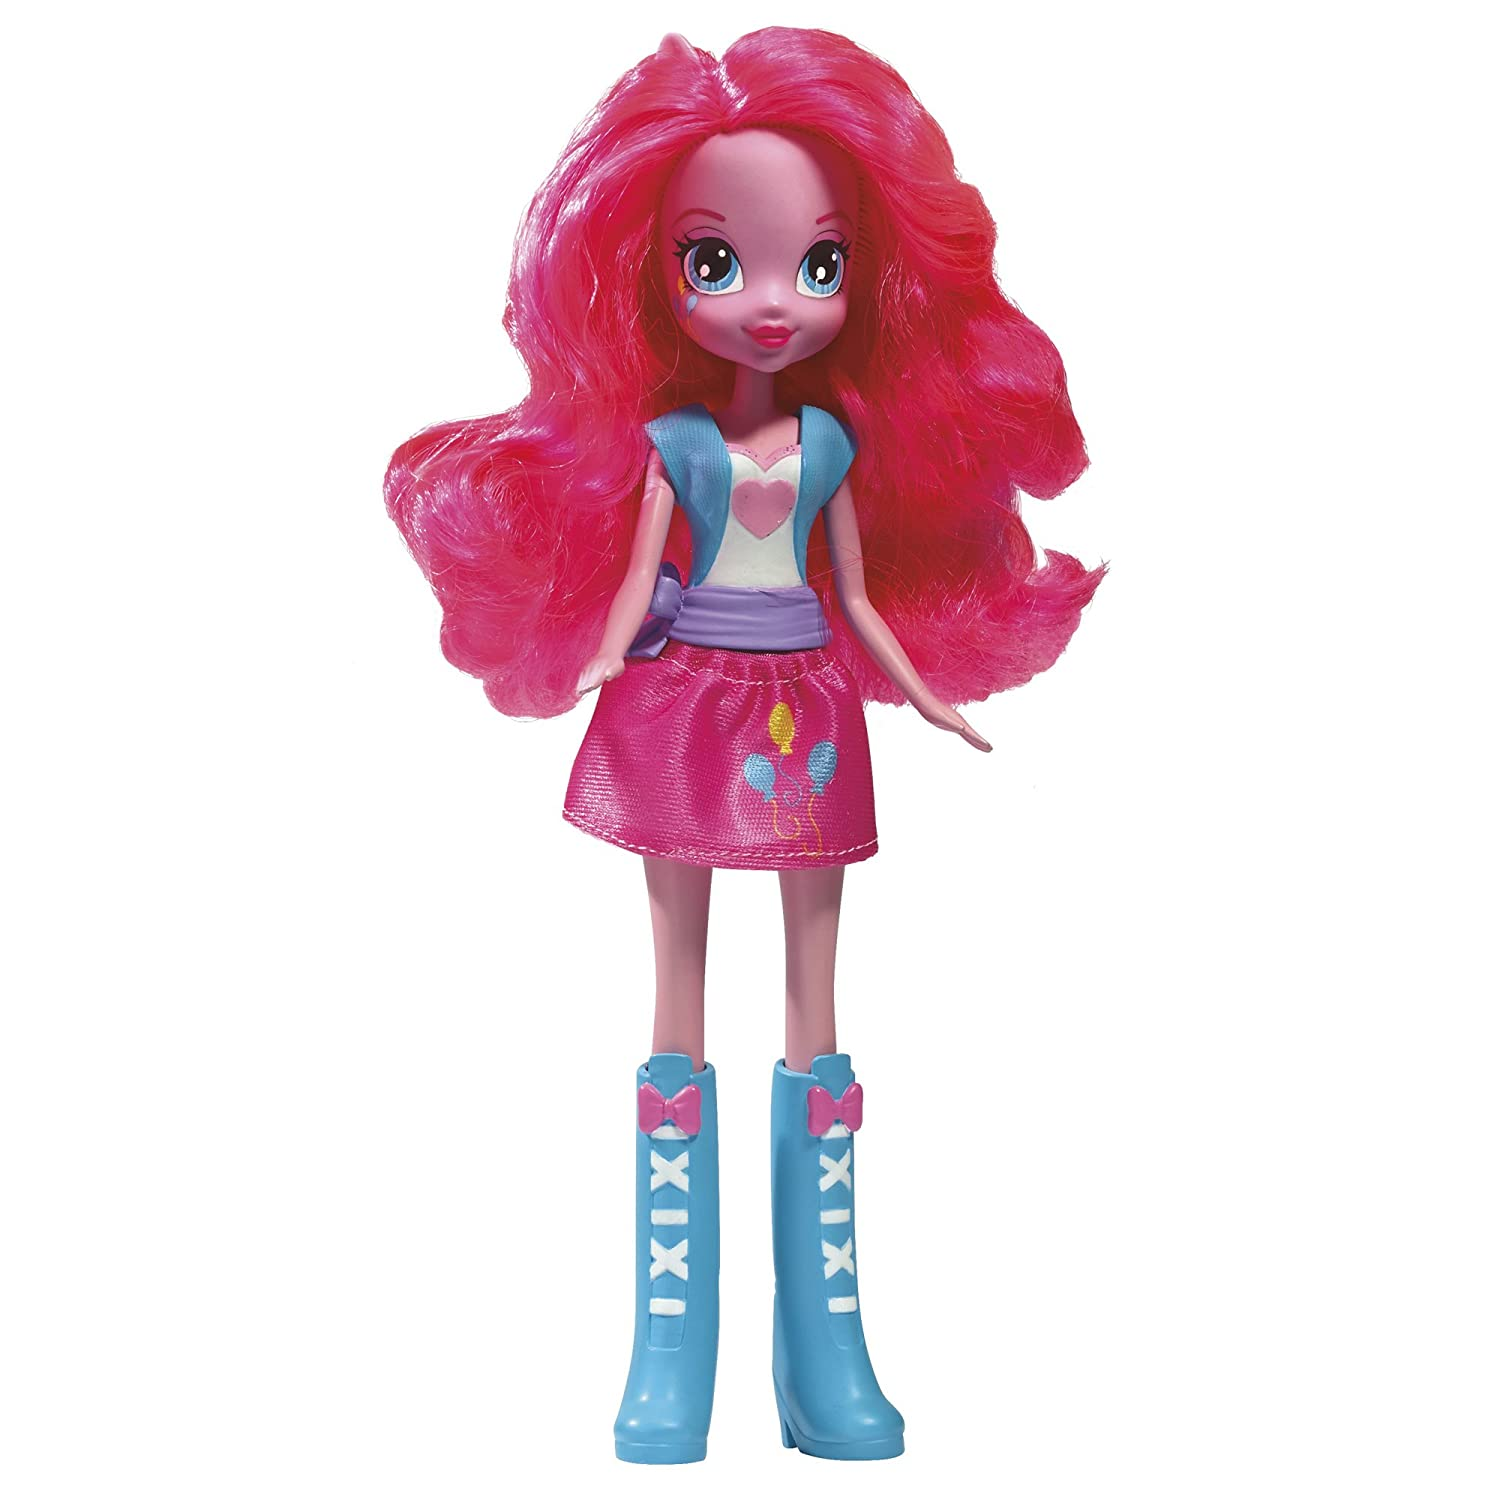 my little pony equestria girls collection pinkie pie doll amazoncouk toys games